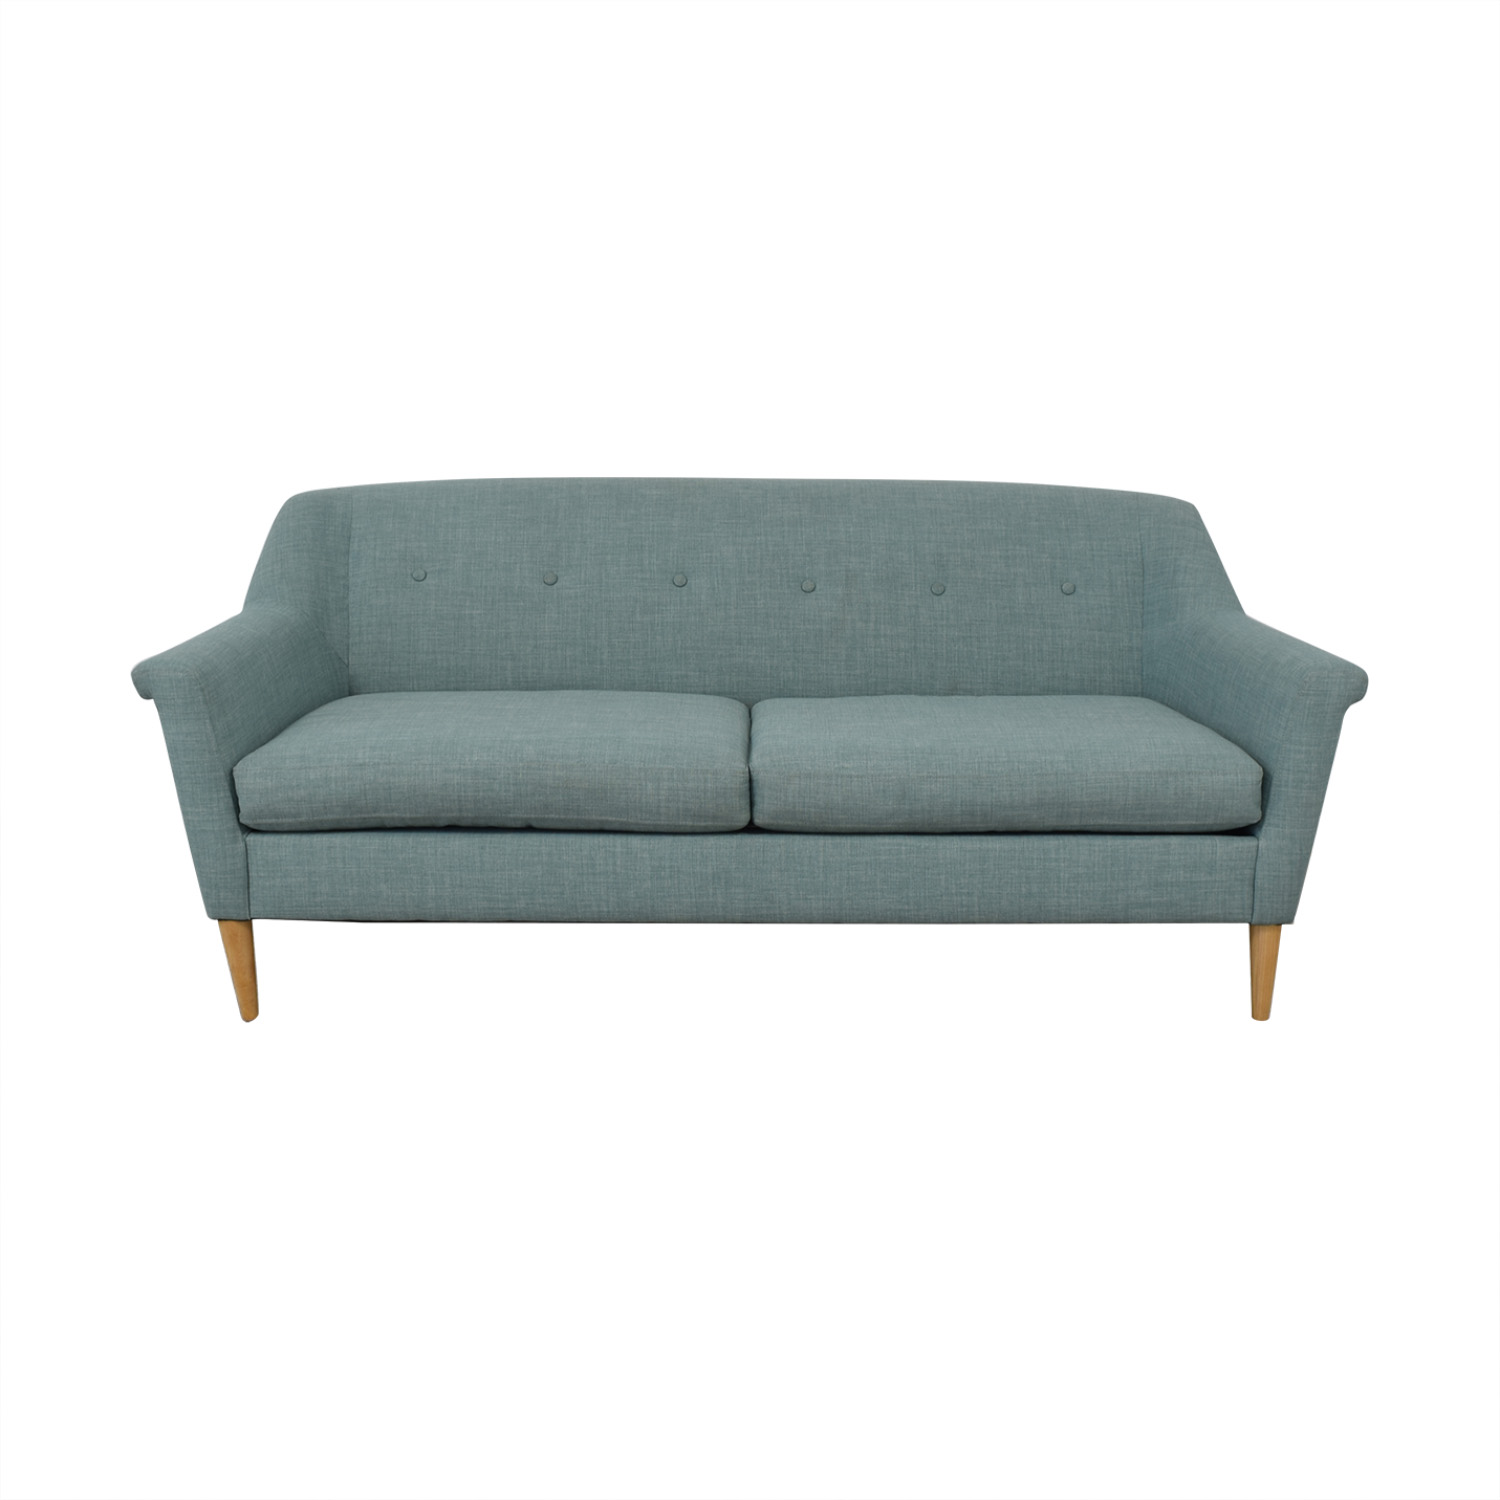 West Elm Finn Loveseat sale